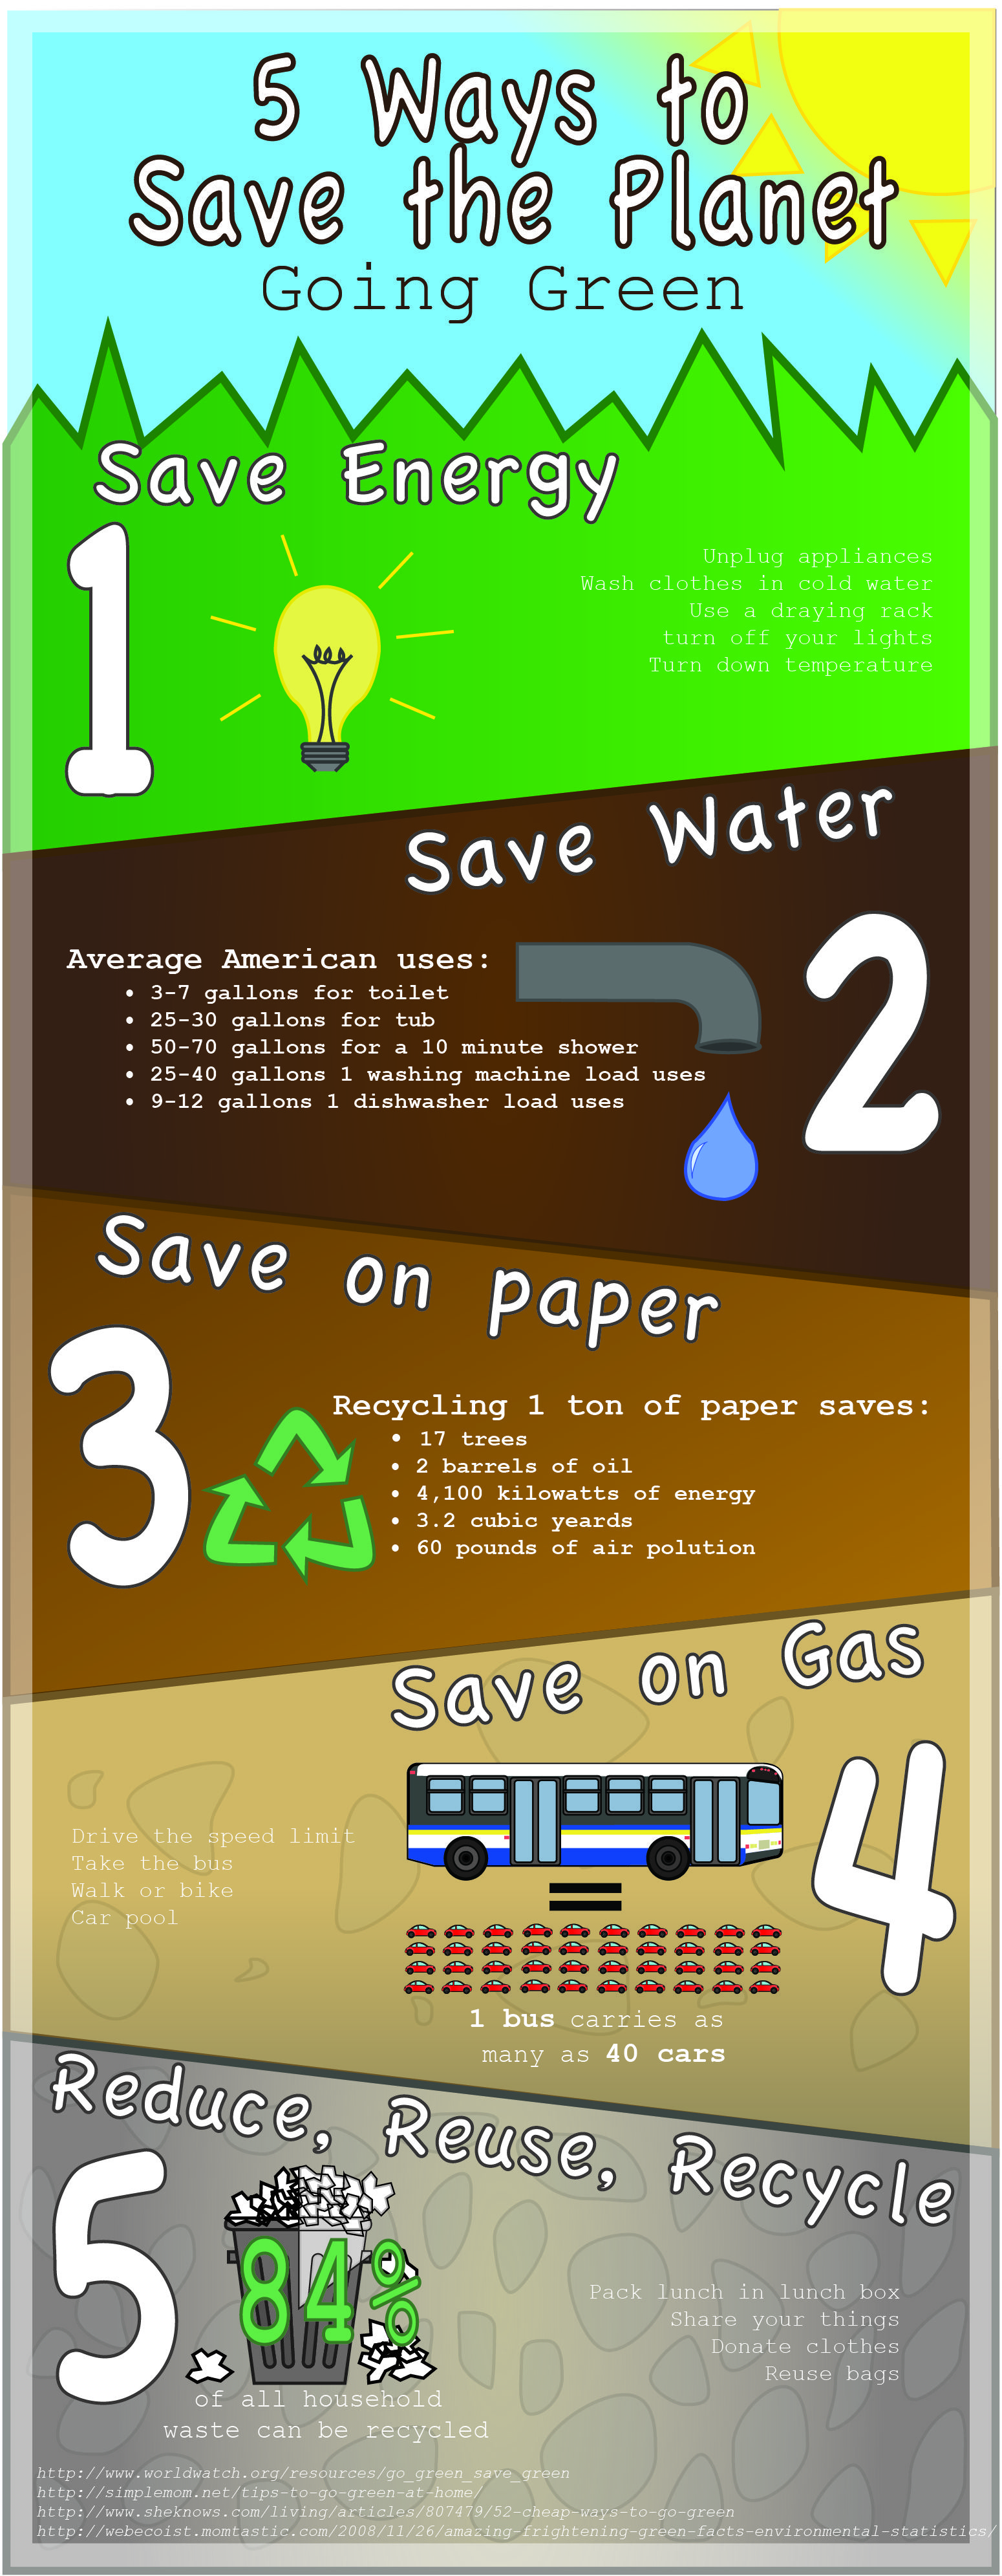 going green essay papers